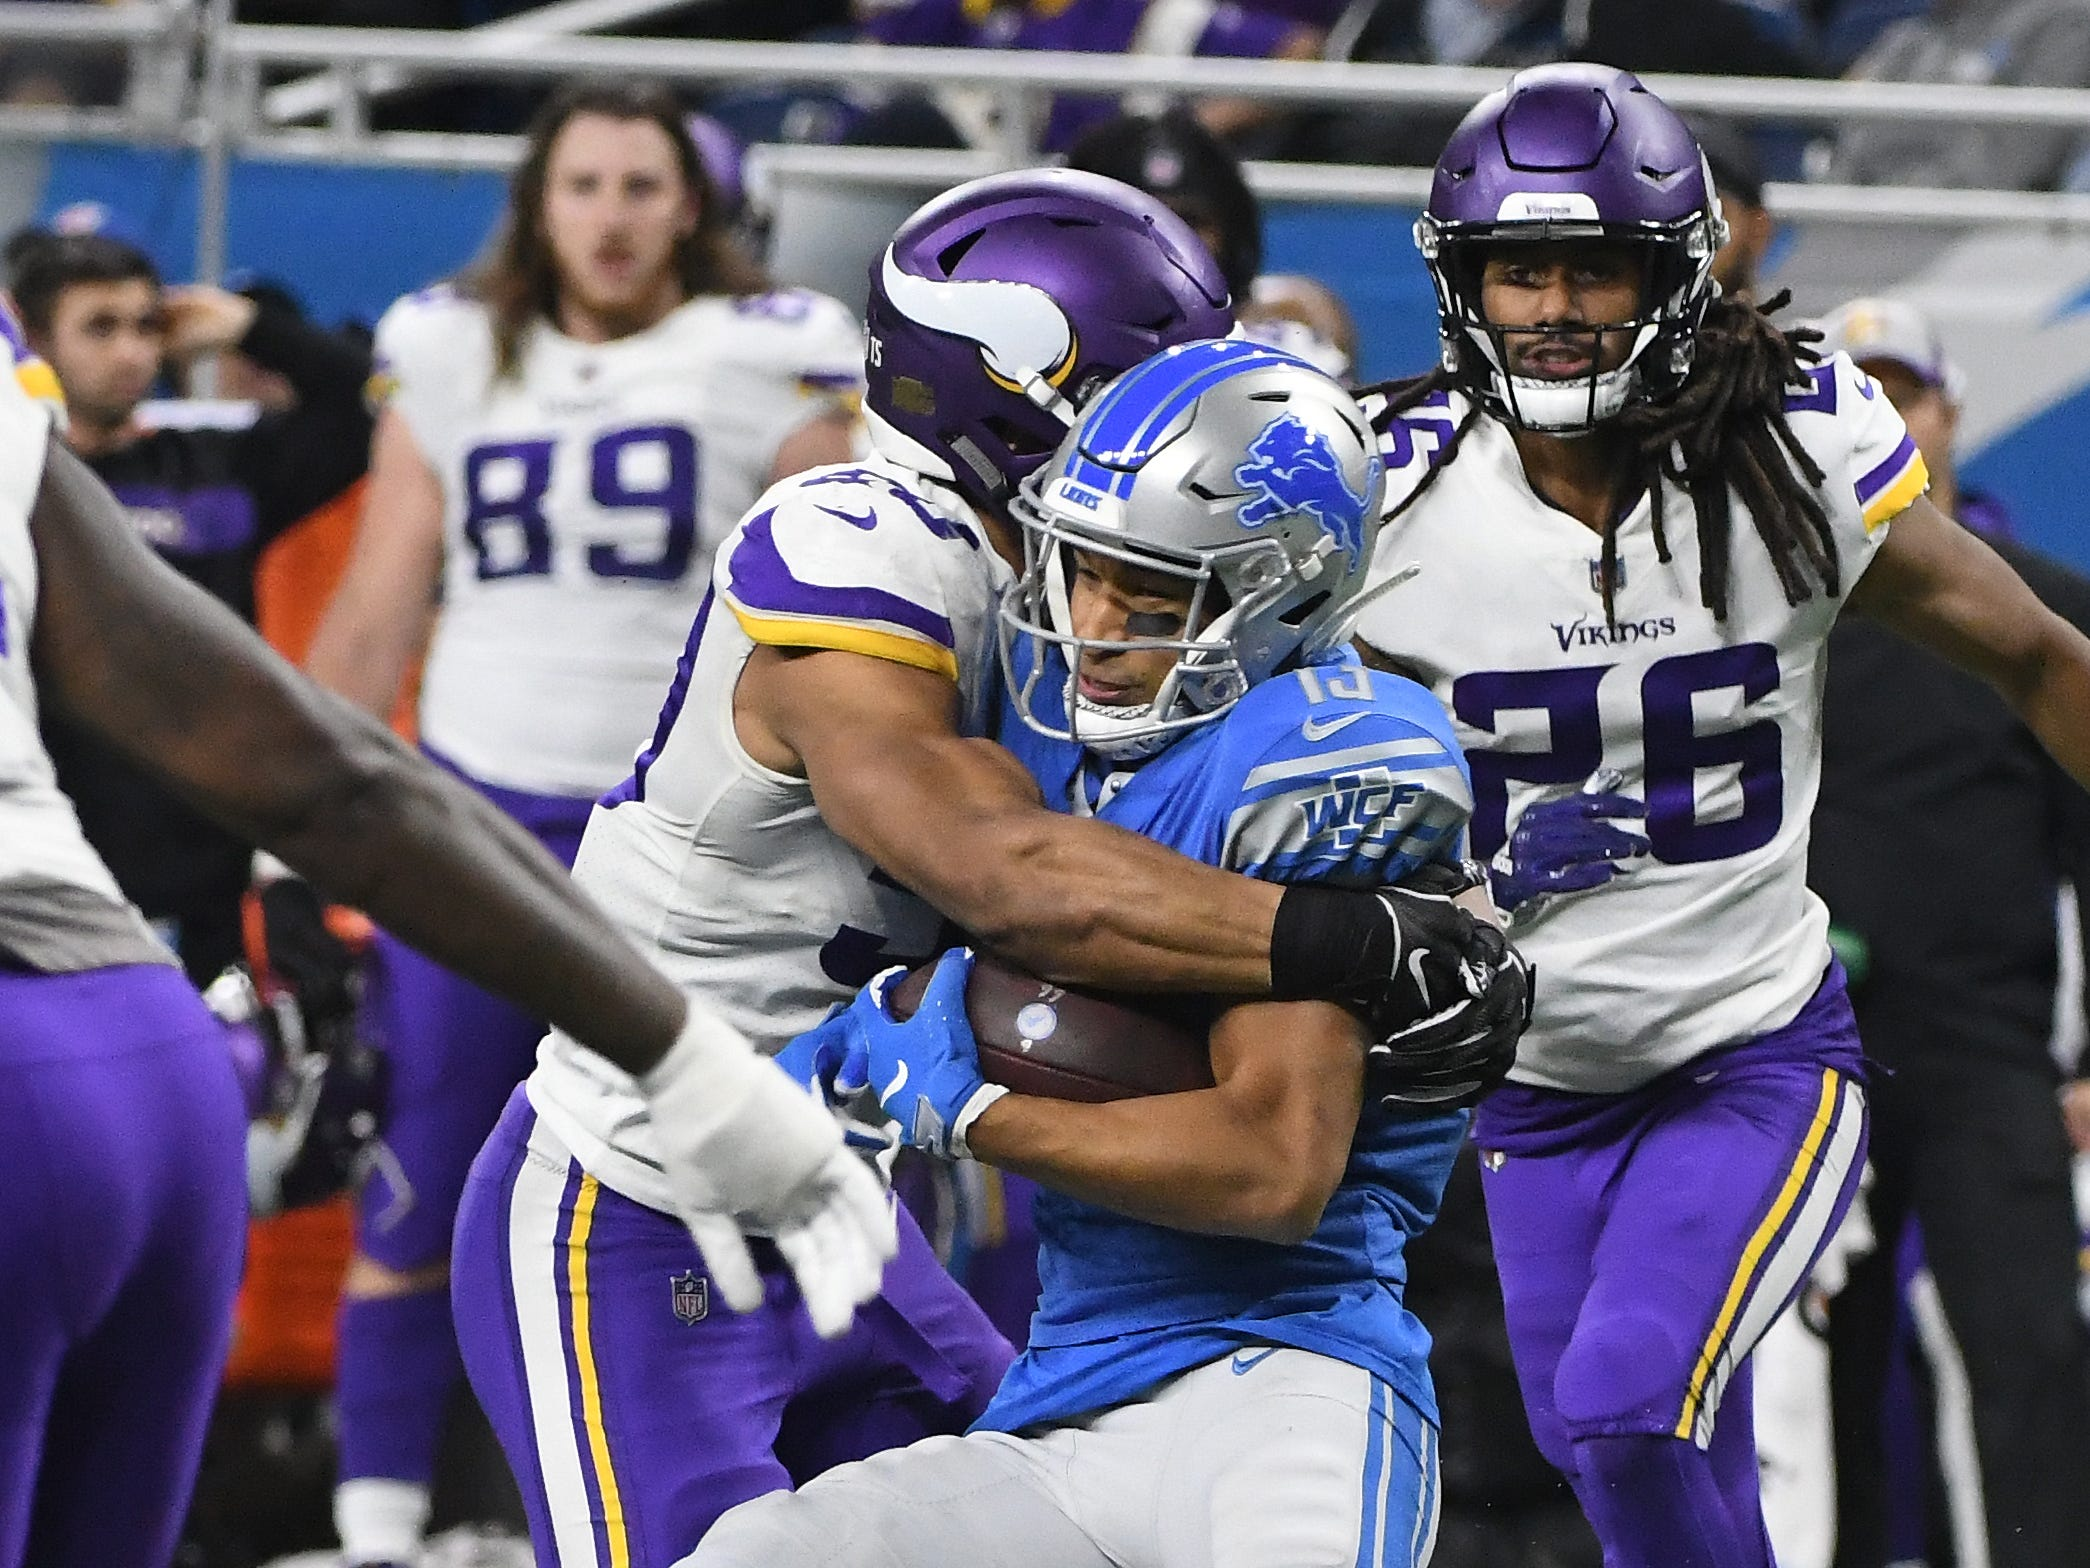 Vikings' Eric Wilson brings down Lions' T.J. Jones after a reception late in the fourth quarter.